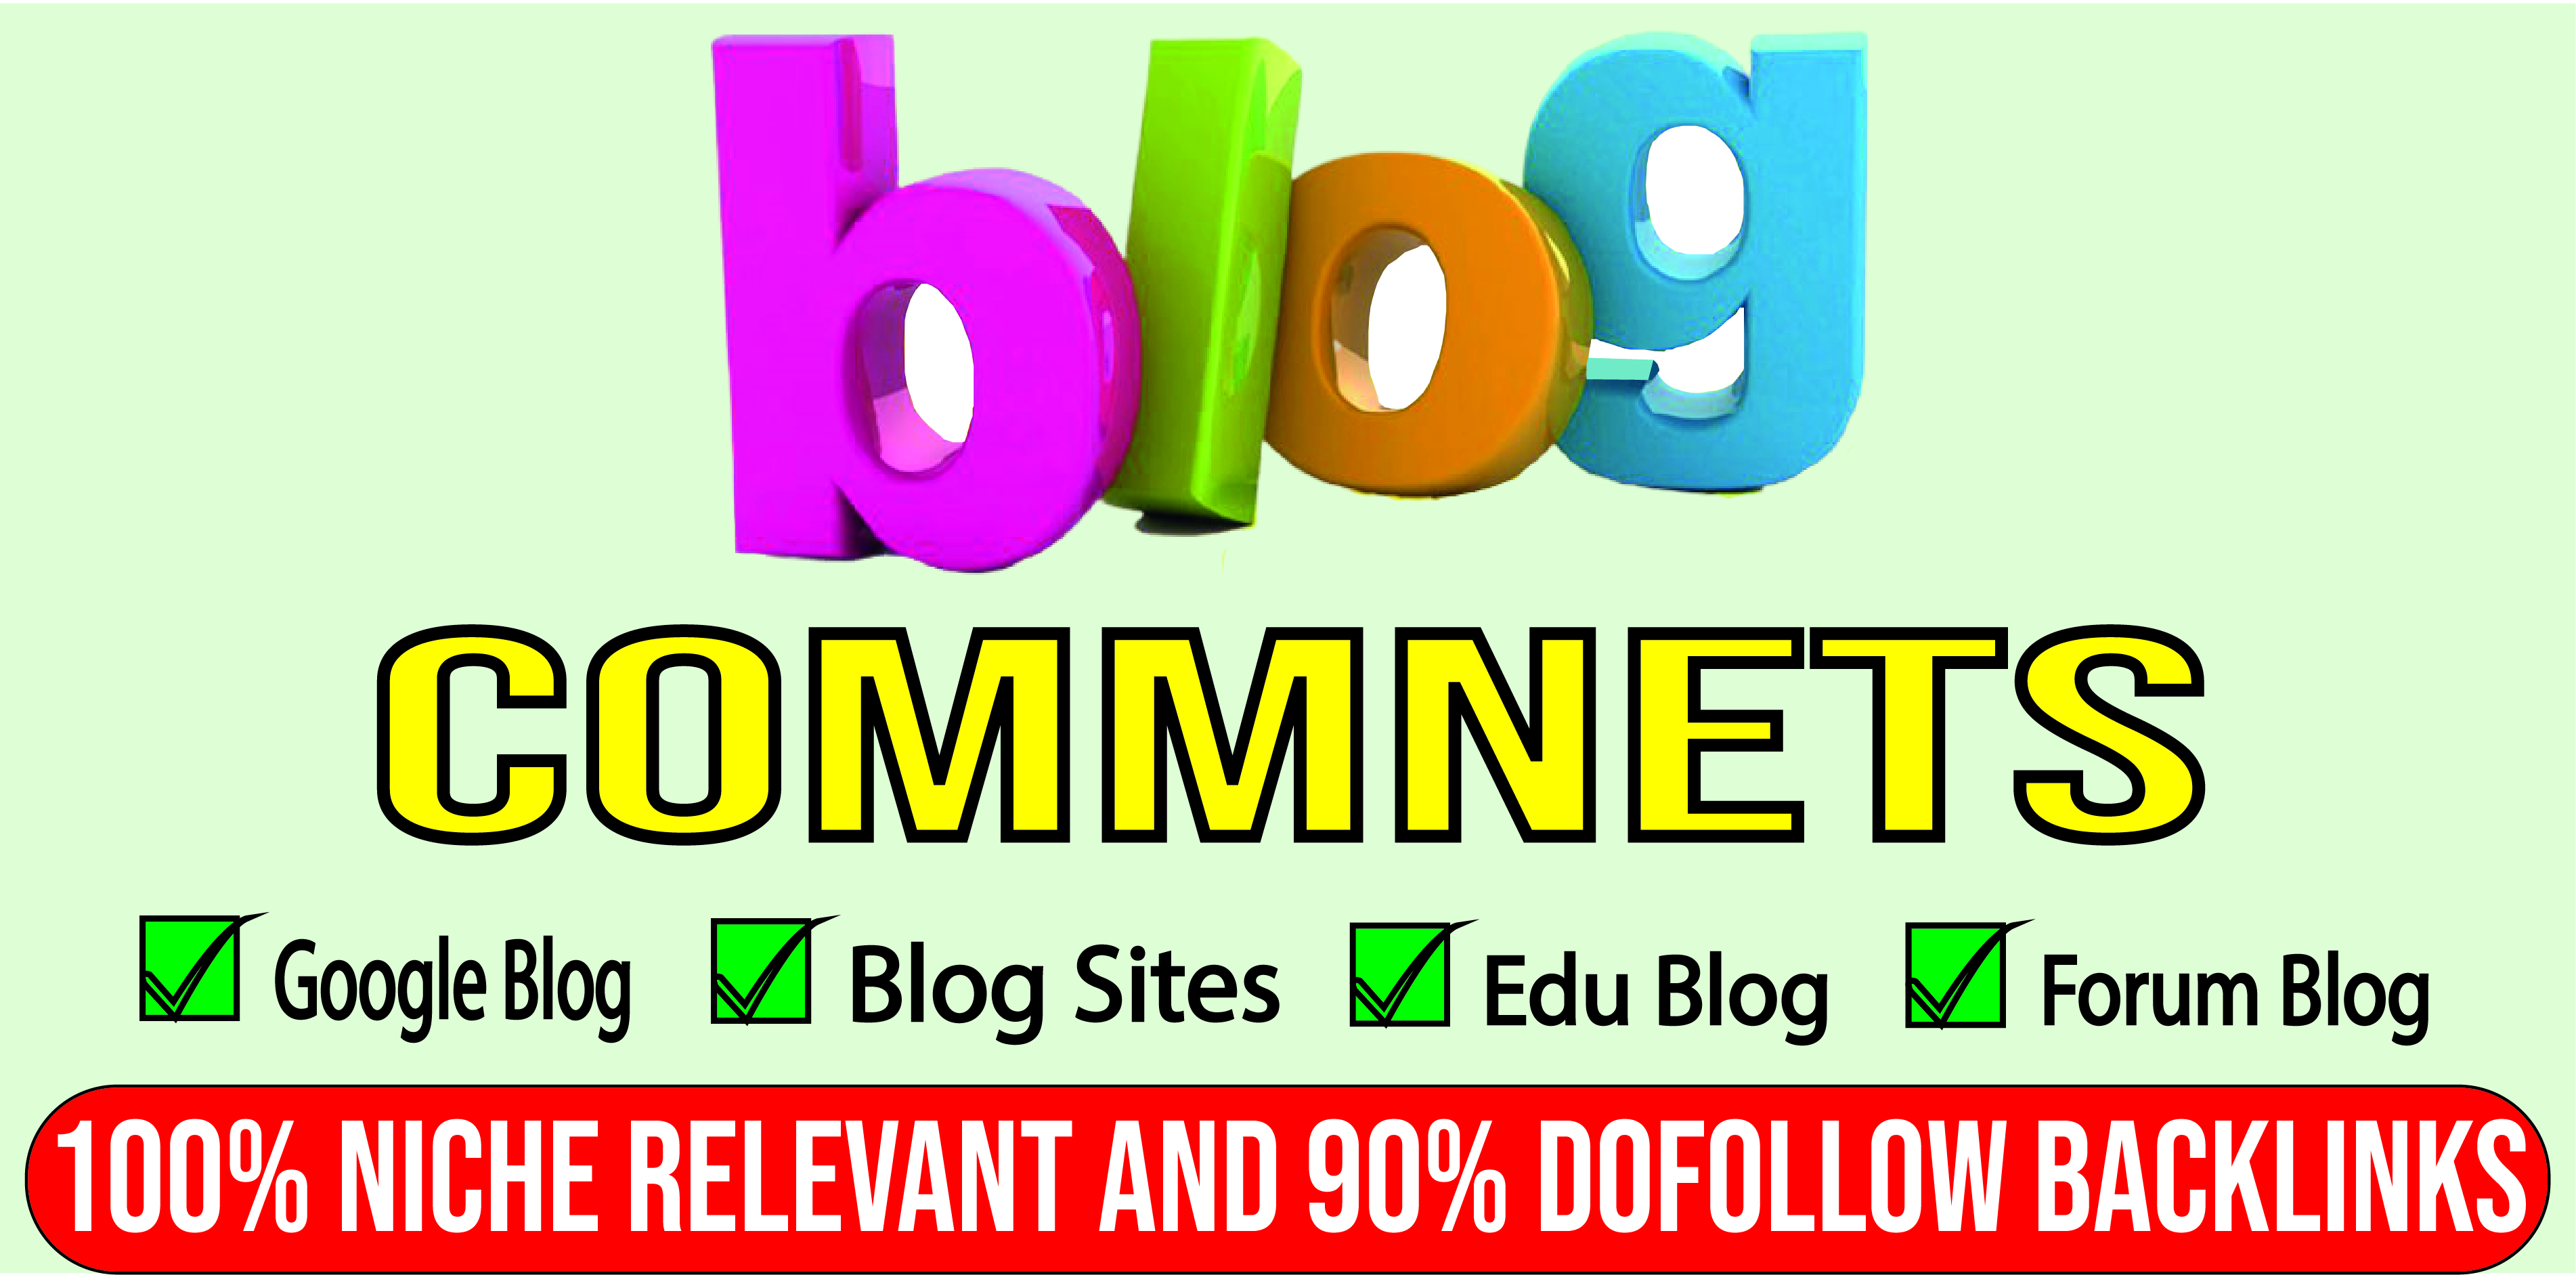 Skyrocket Your Websites Authority With 40 High PA/DA TF/CF Blog Comments